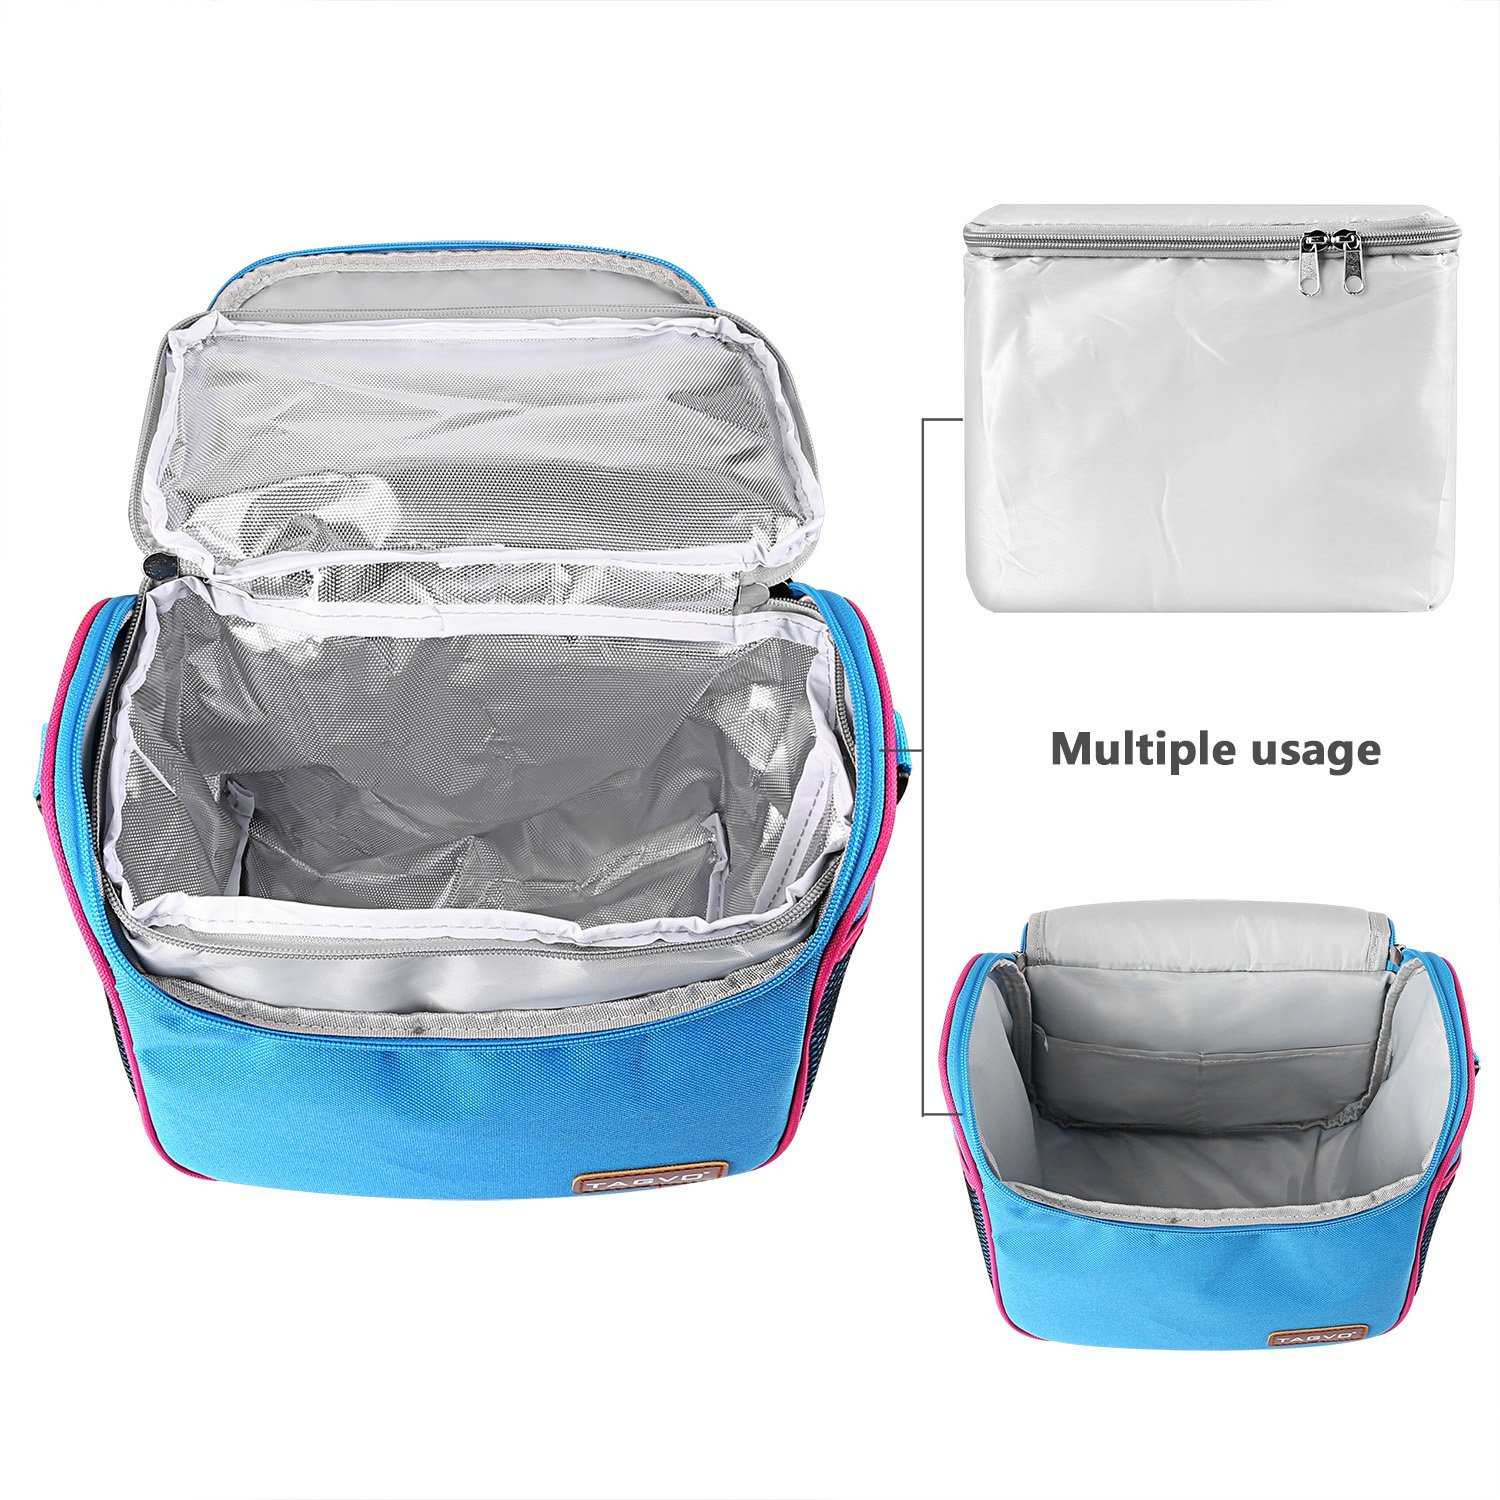 Honana CF-LB060 Woman Lady Waterproof Insulated Cooler Lunch Tote Bag With 2 Detachable Liners Baby Milk Storage Container